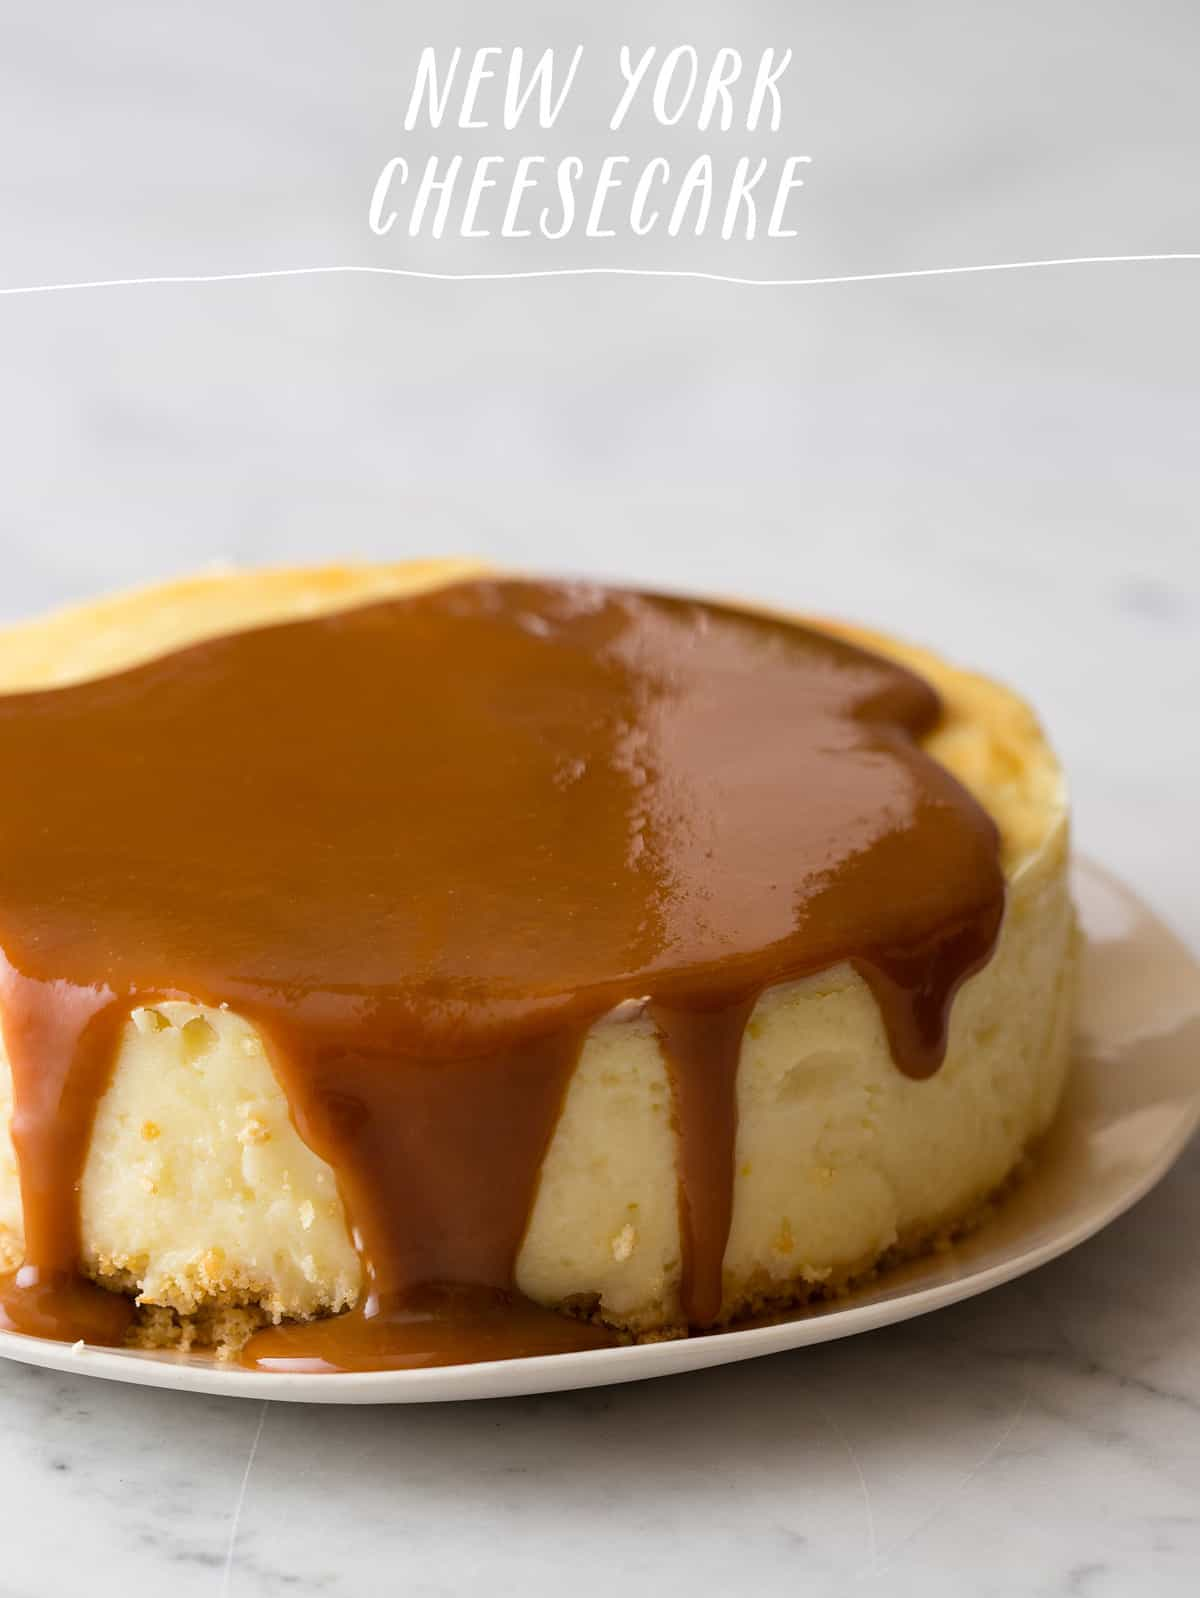 Baked Cheese Cake Recipe